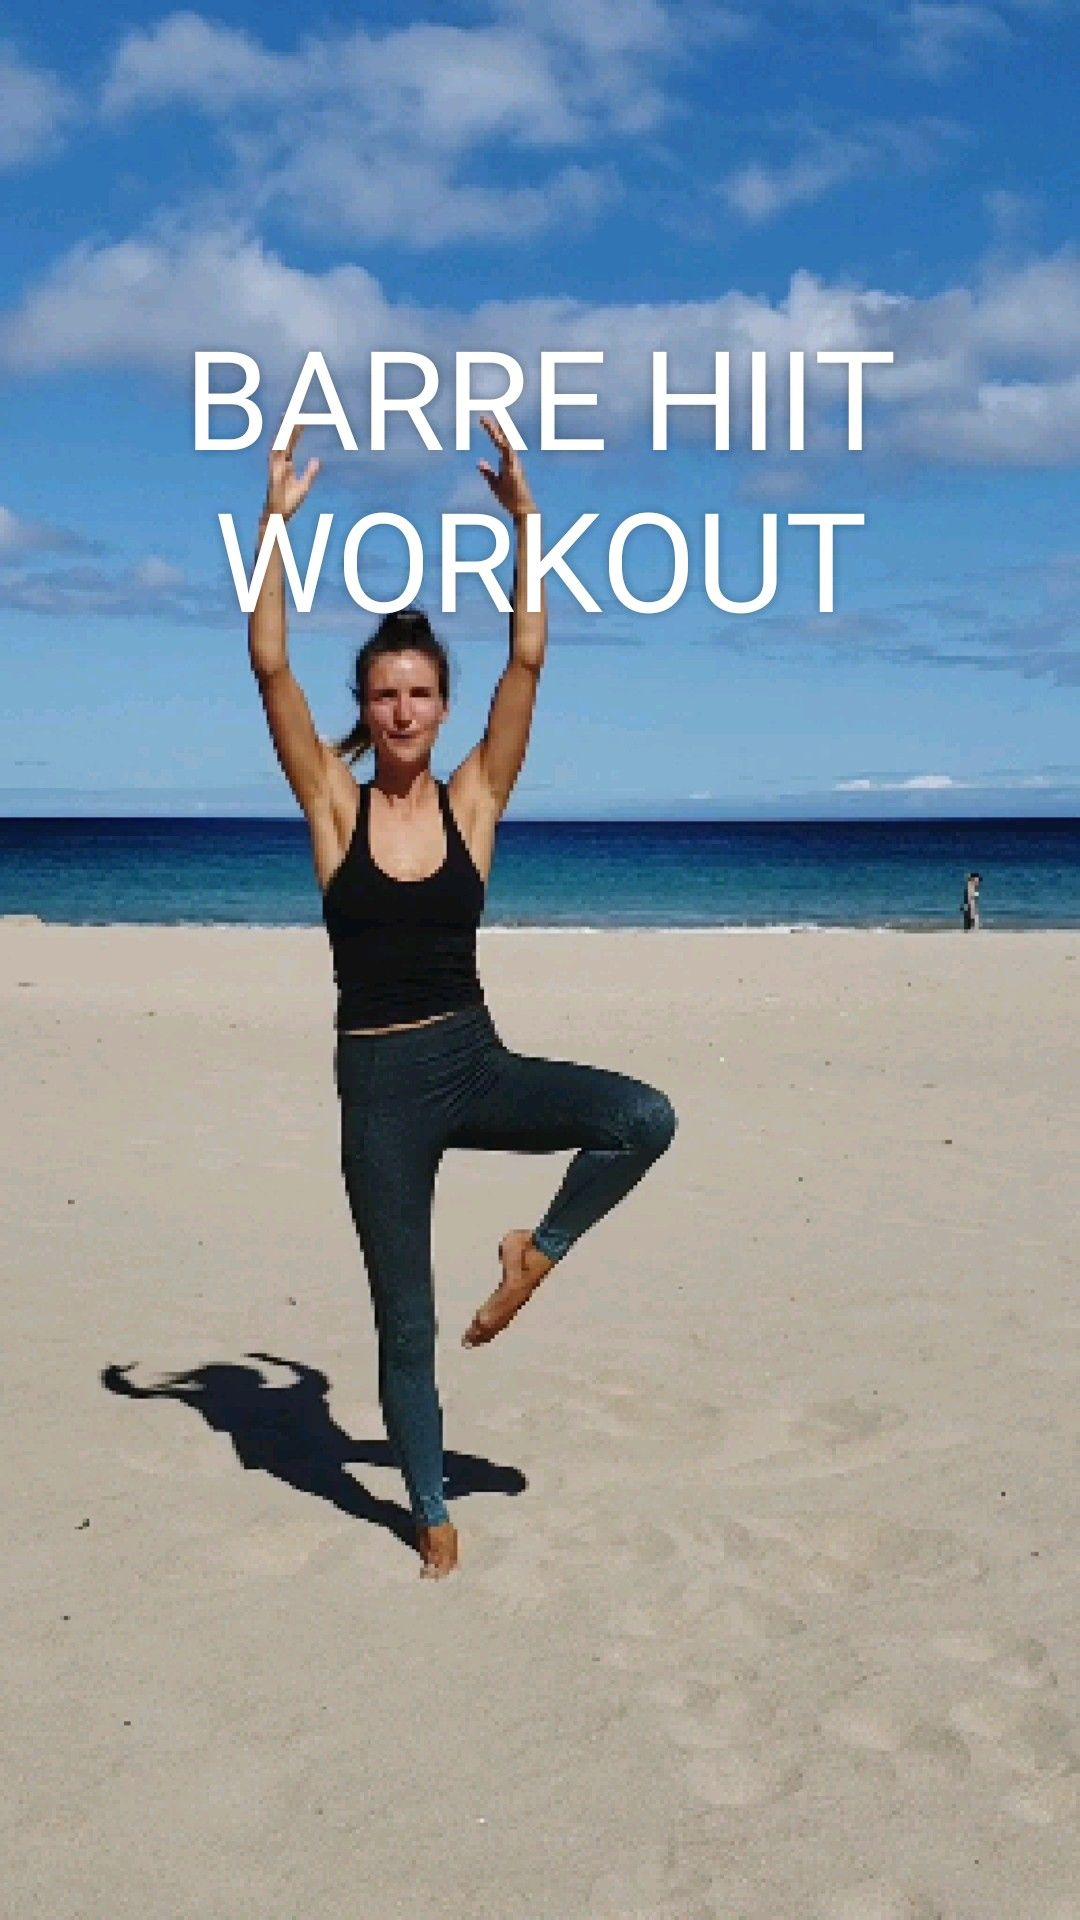 BARRE HIIT WORKOUT